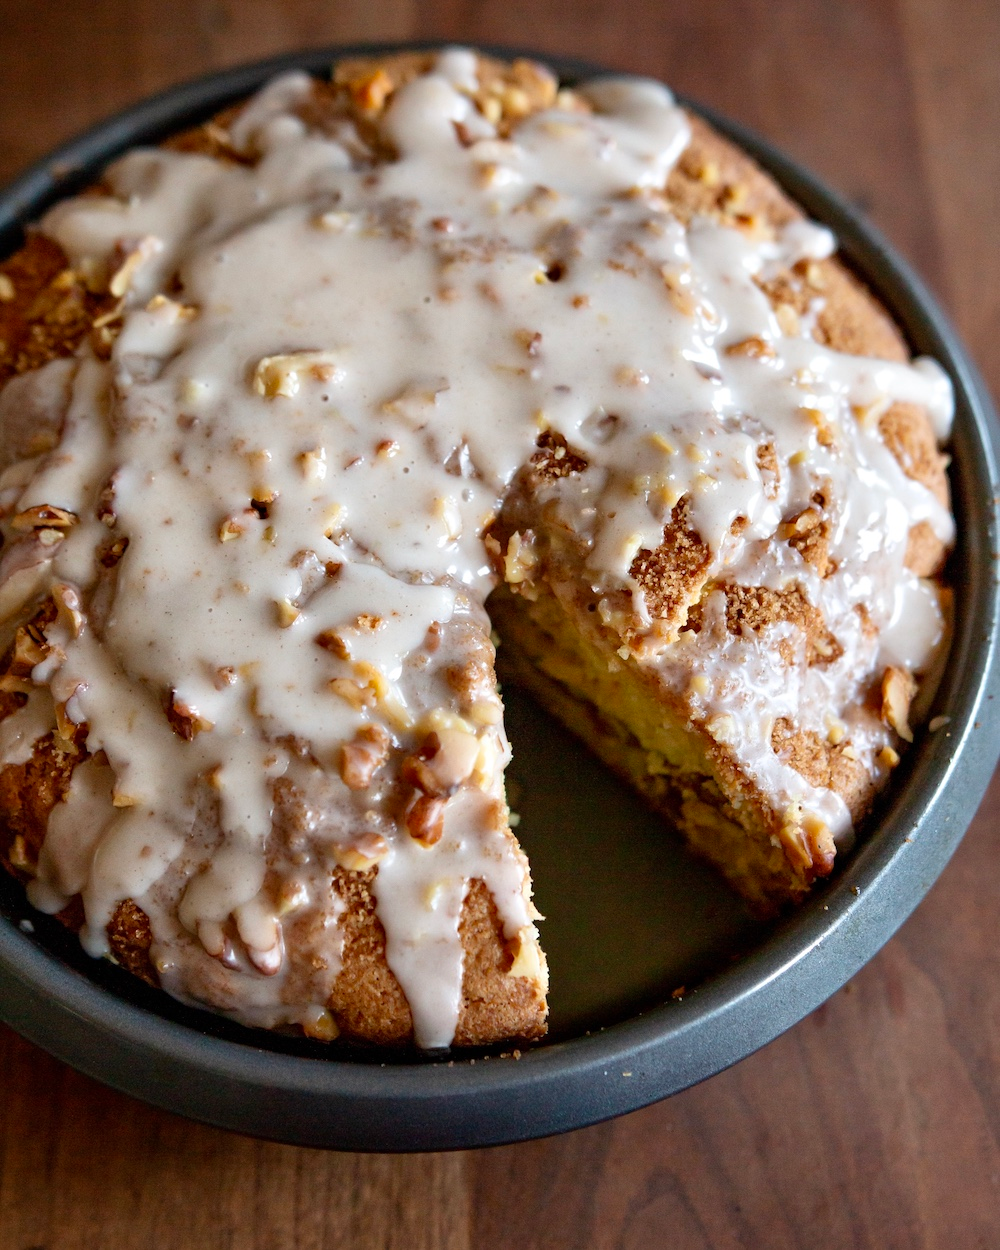 Best Sour Cream Coffee Cake Recipe Recipe In 2020 Sour Cream Coffee Cake Coffee Cake Coffee Cake Recipes Easy